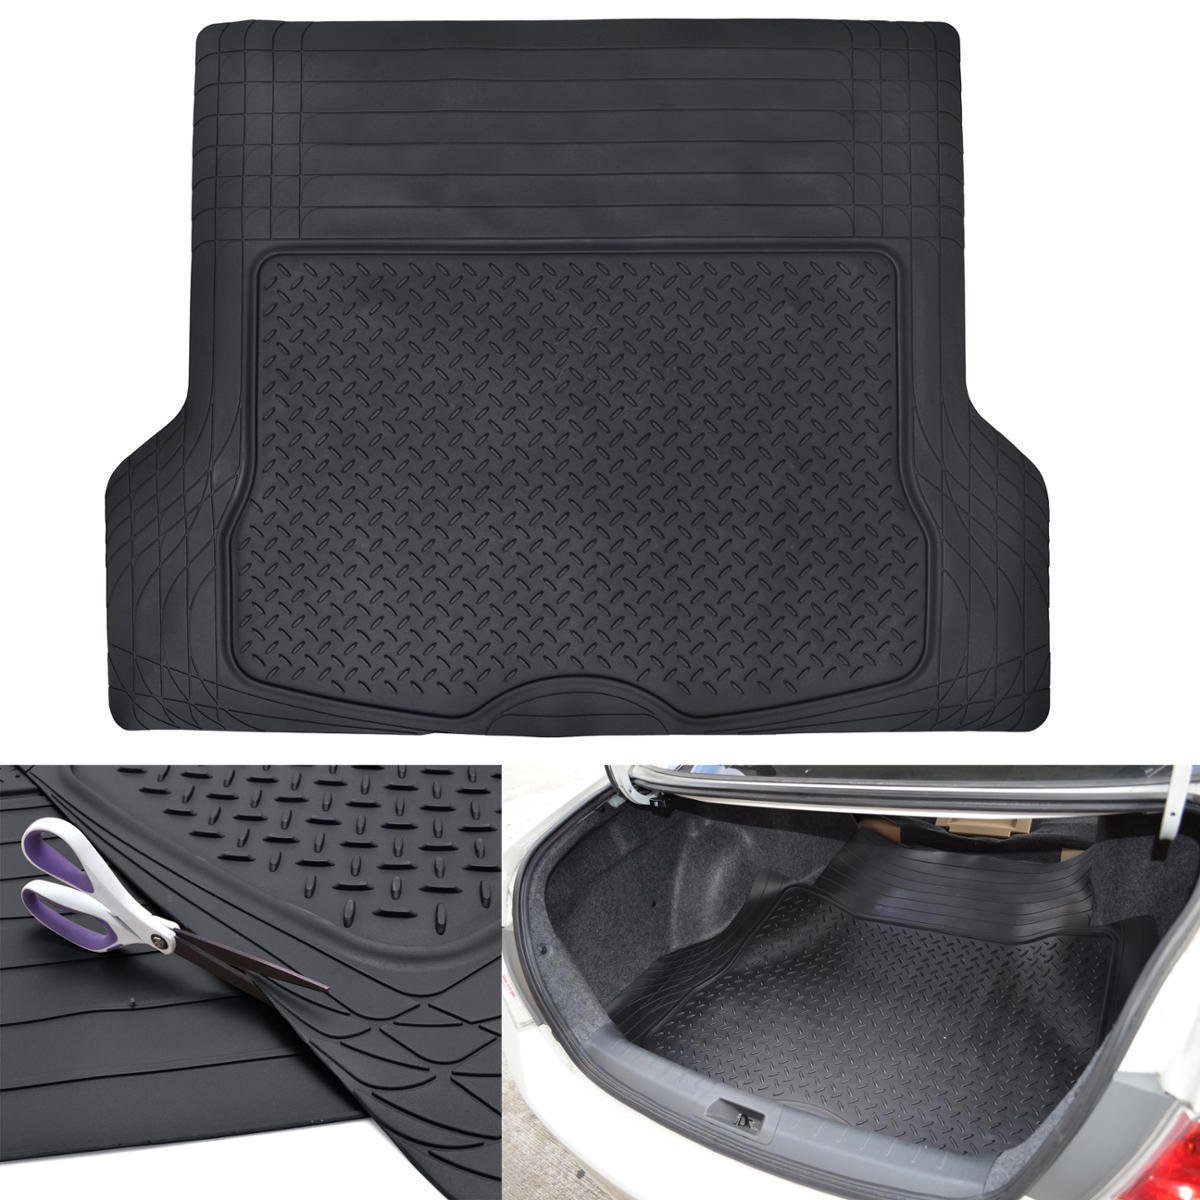 BDK-MT-785 Heavy Duty Cargo Liner Floor Mat-All Weather Trunk Protection, Trimmable to Fit & Durable HD Rubber Protection for Car SUV Sedan Auto - Black